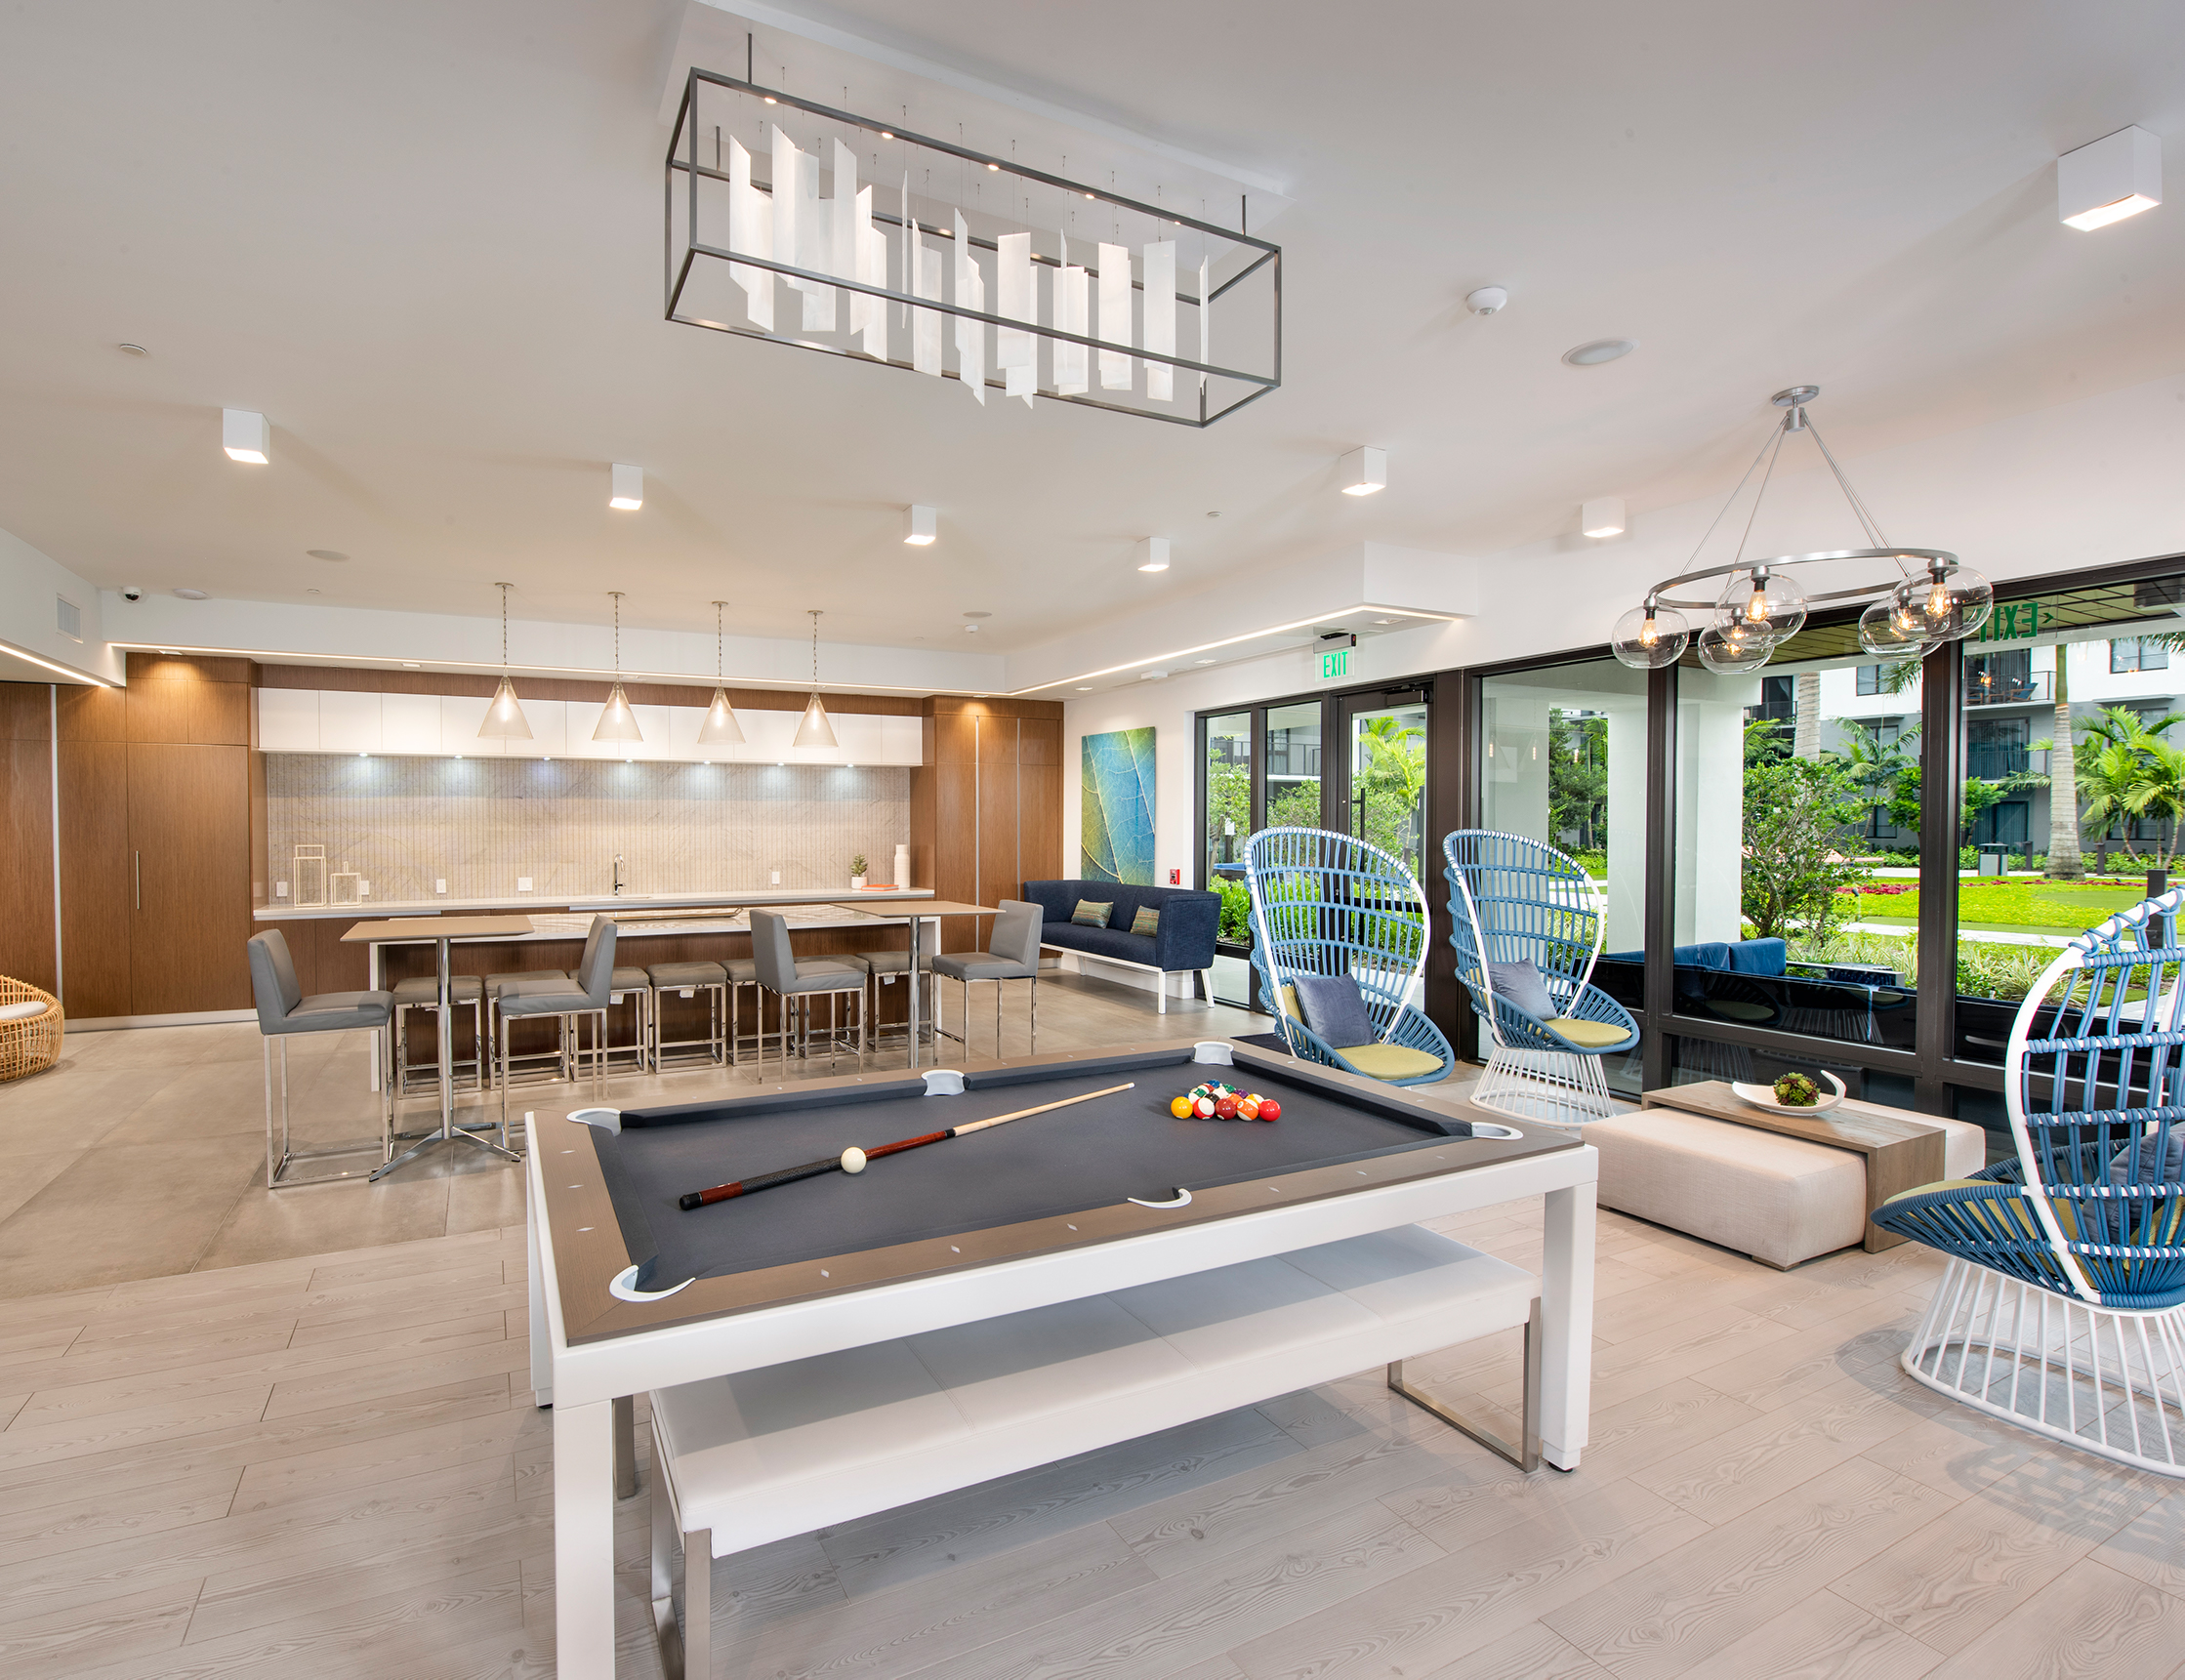 Clubroom Pool Table at Sanctuary Doral